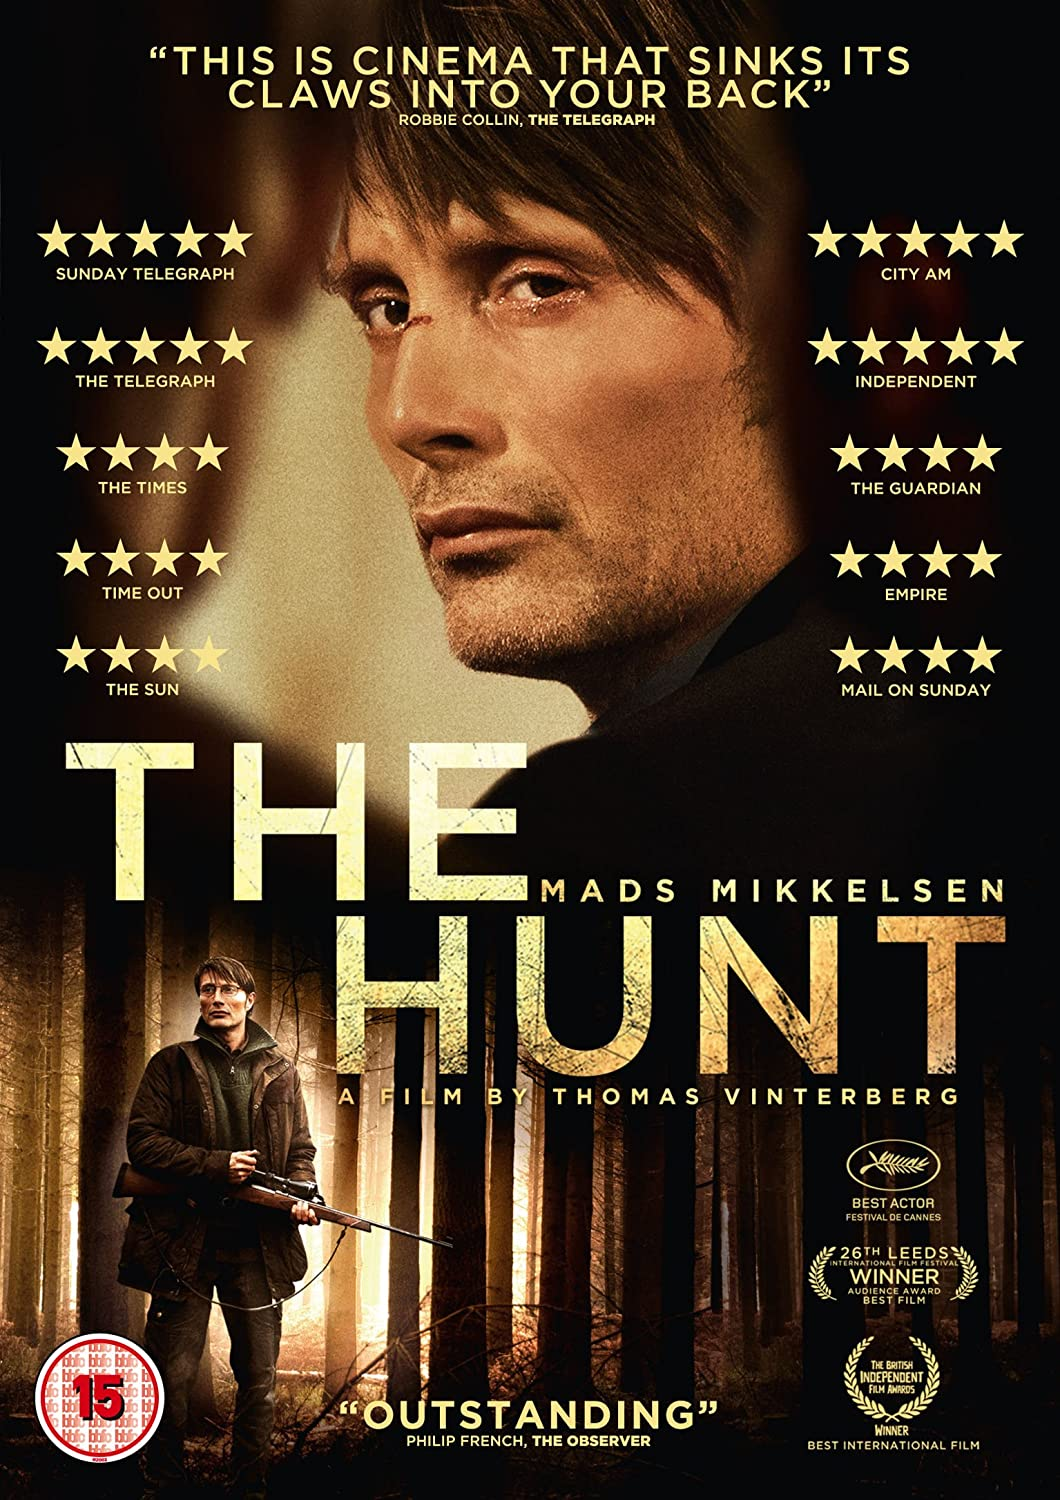 the hunt jagten dvd amazon co uk mads mikkelsen lasse the hunt jagten dvd amazon co uk mads mikkelsen lasse fogelstrom annika wedderkop thomas bo larsen thomas vinterberg dvd blu ray